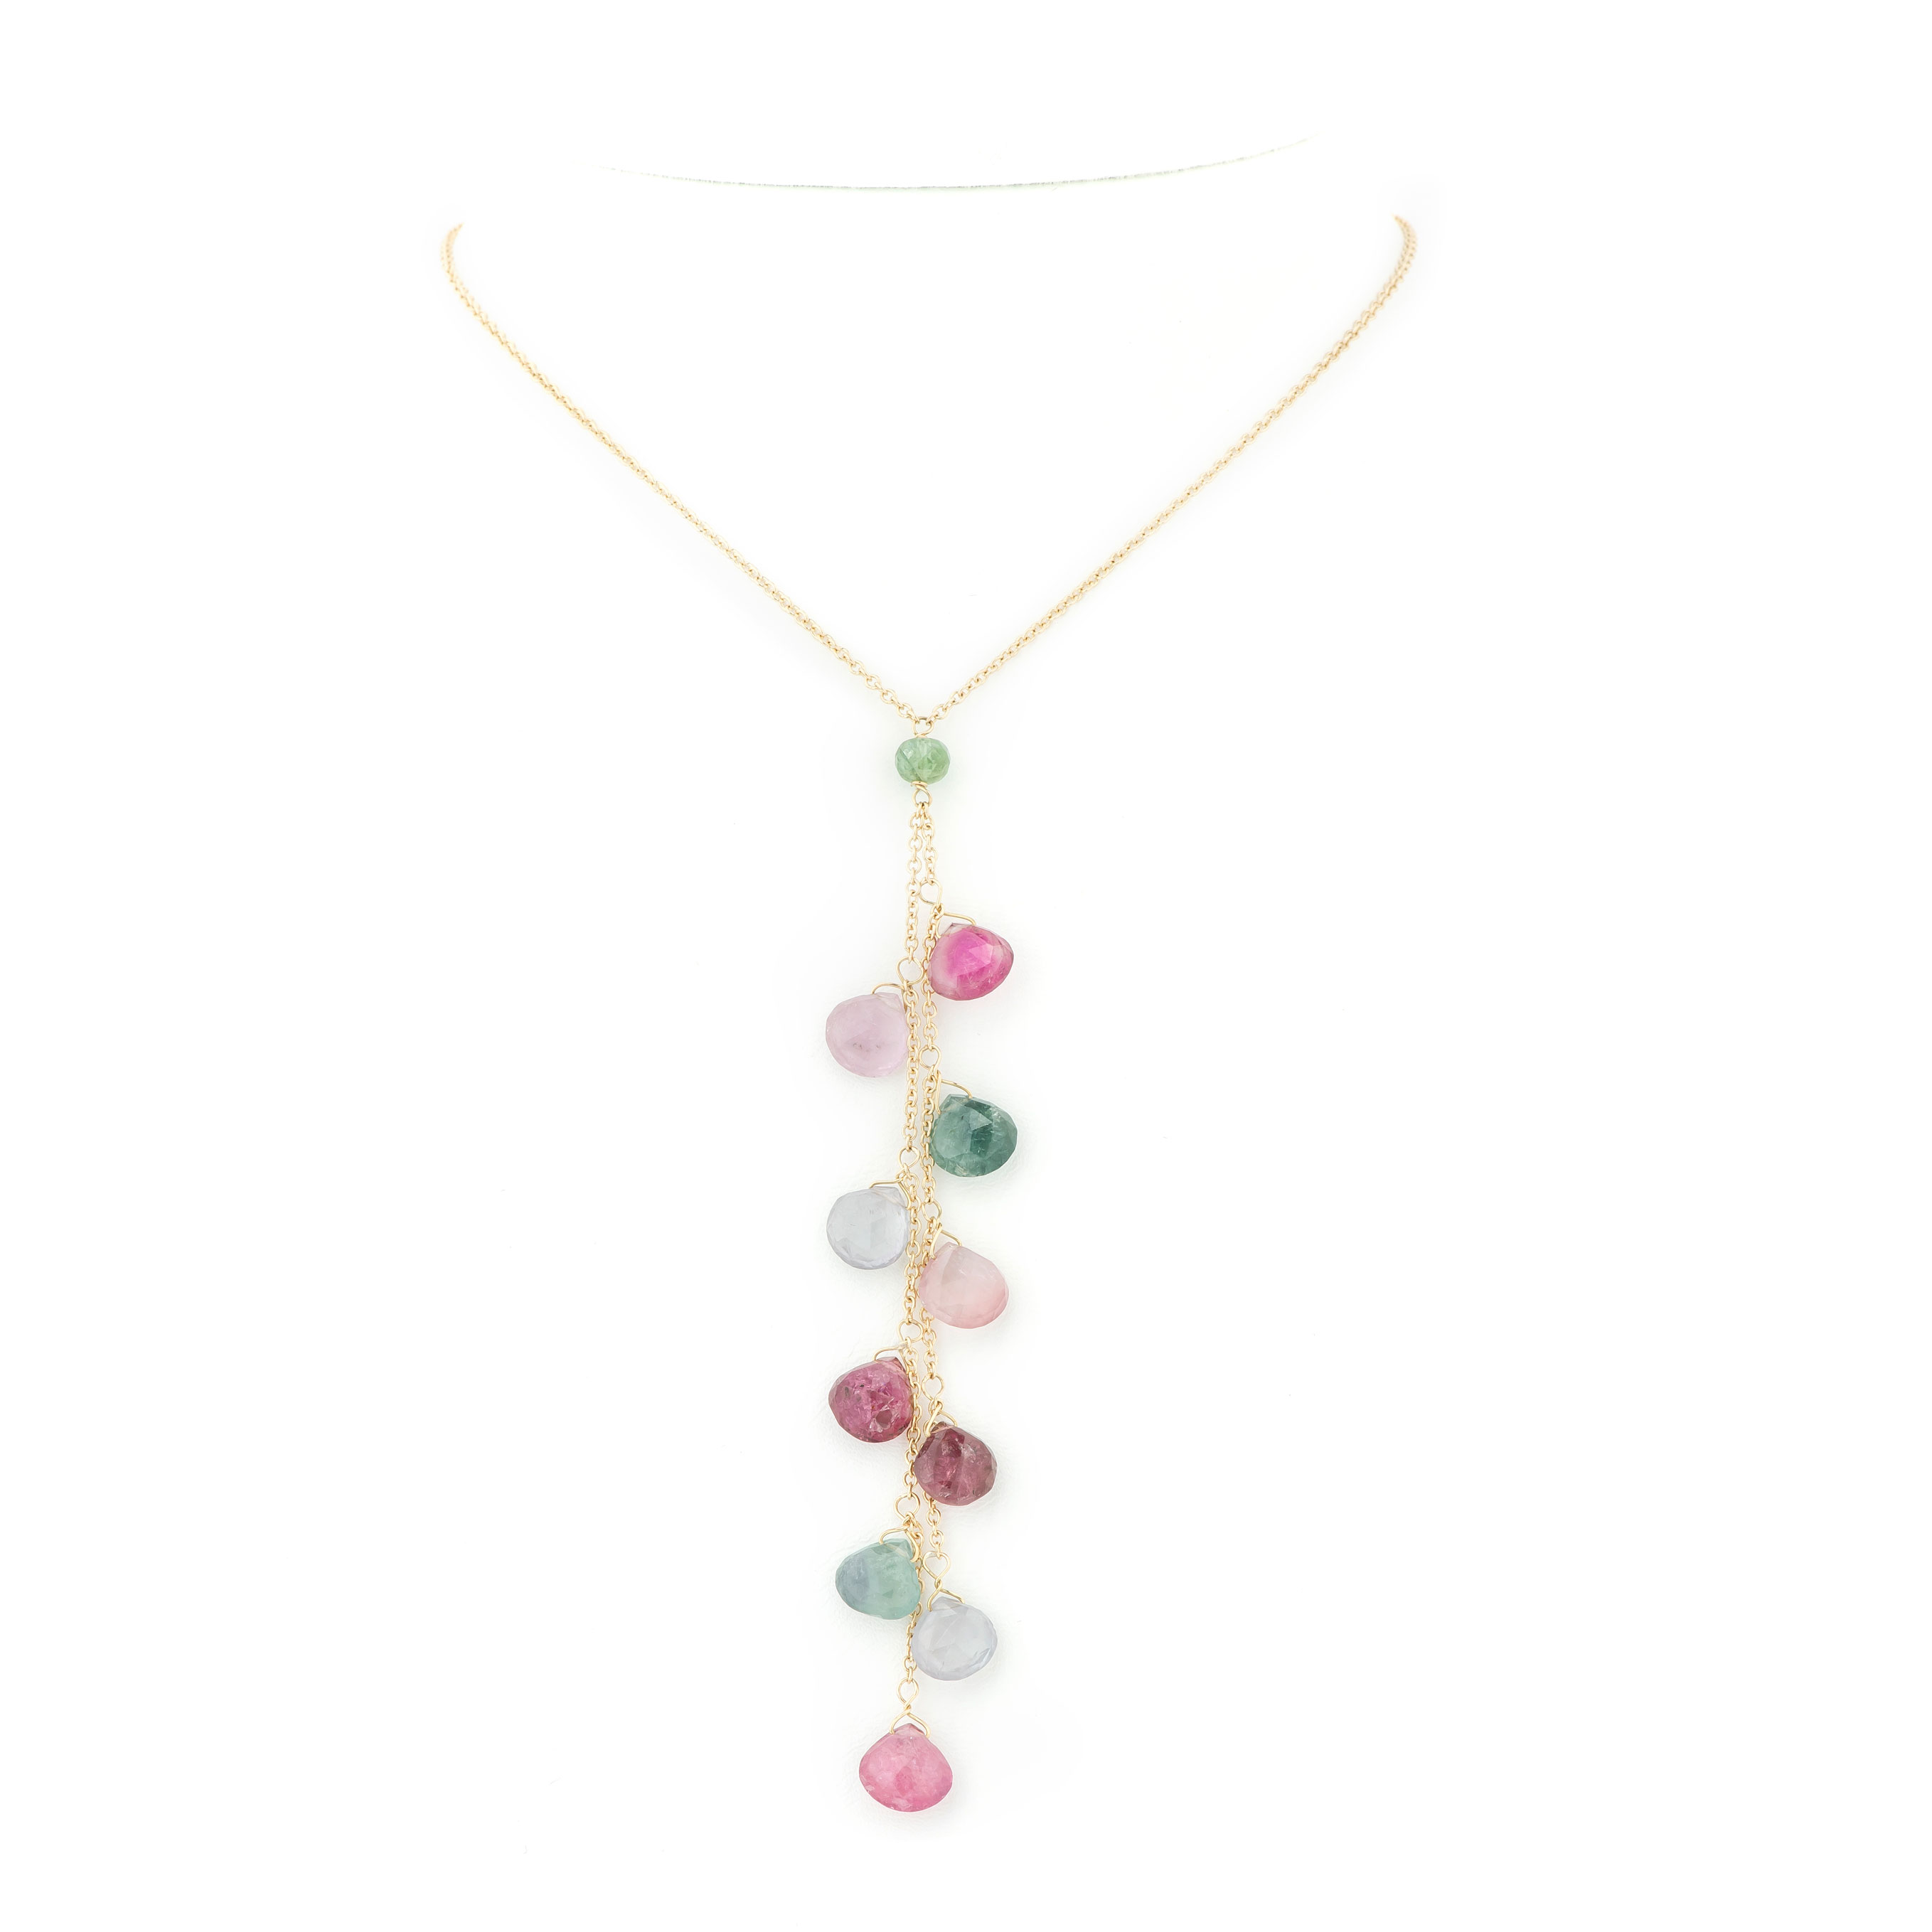 Collier grappe tourmalines